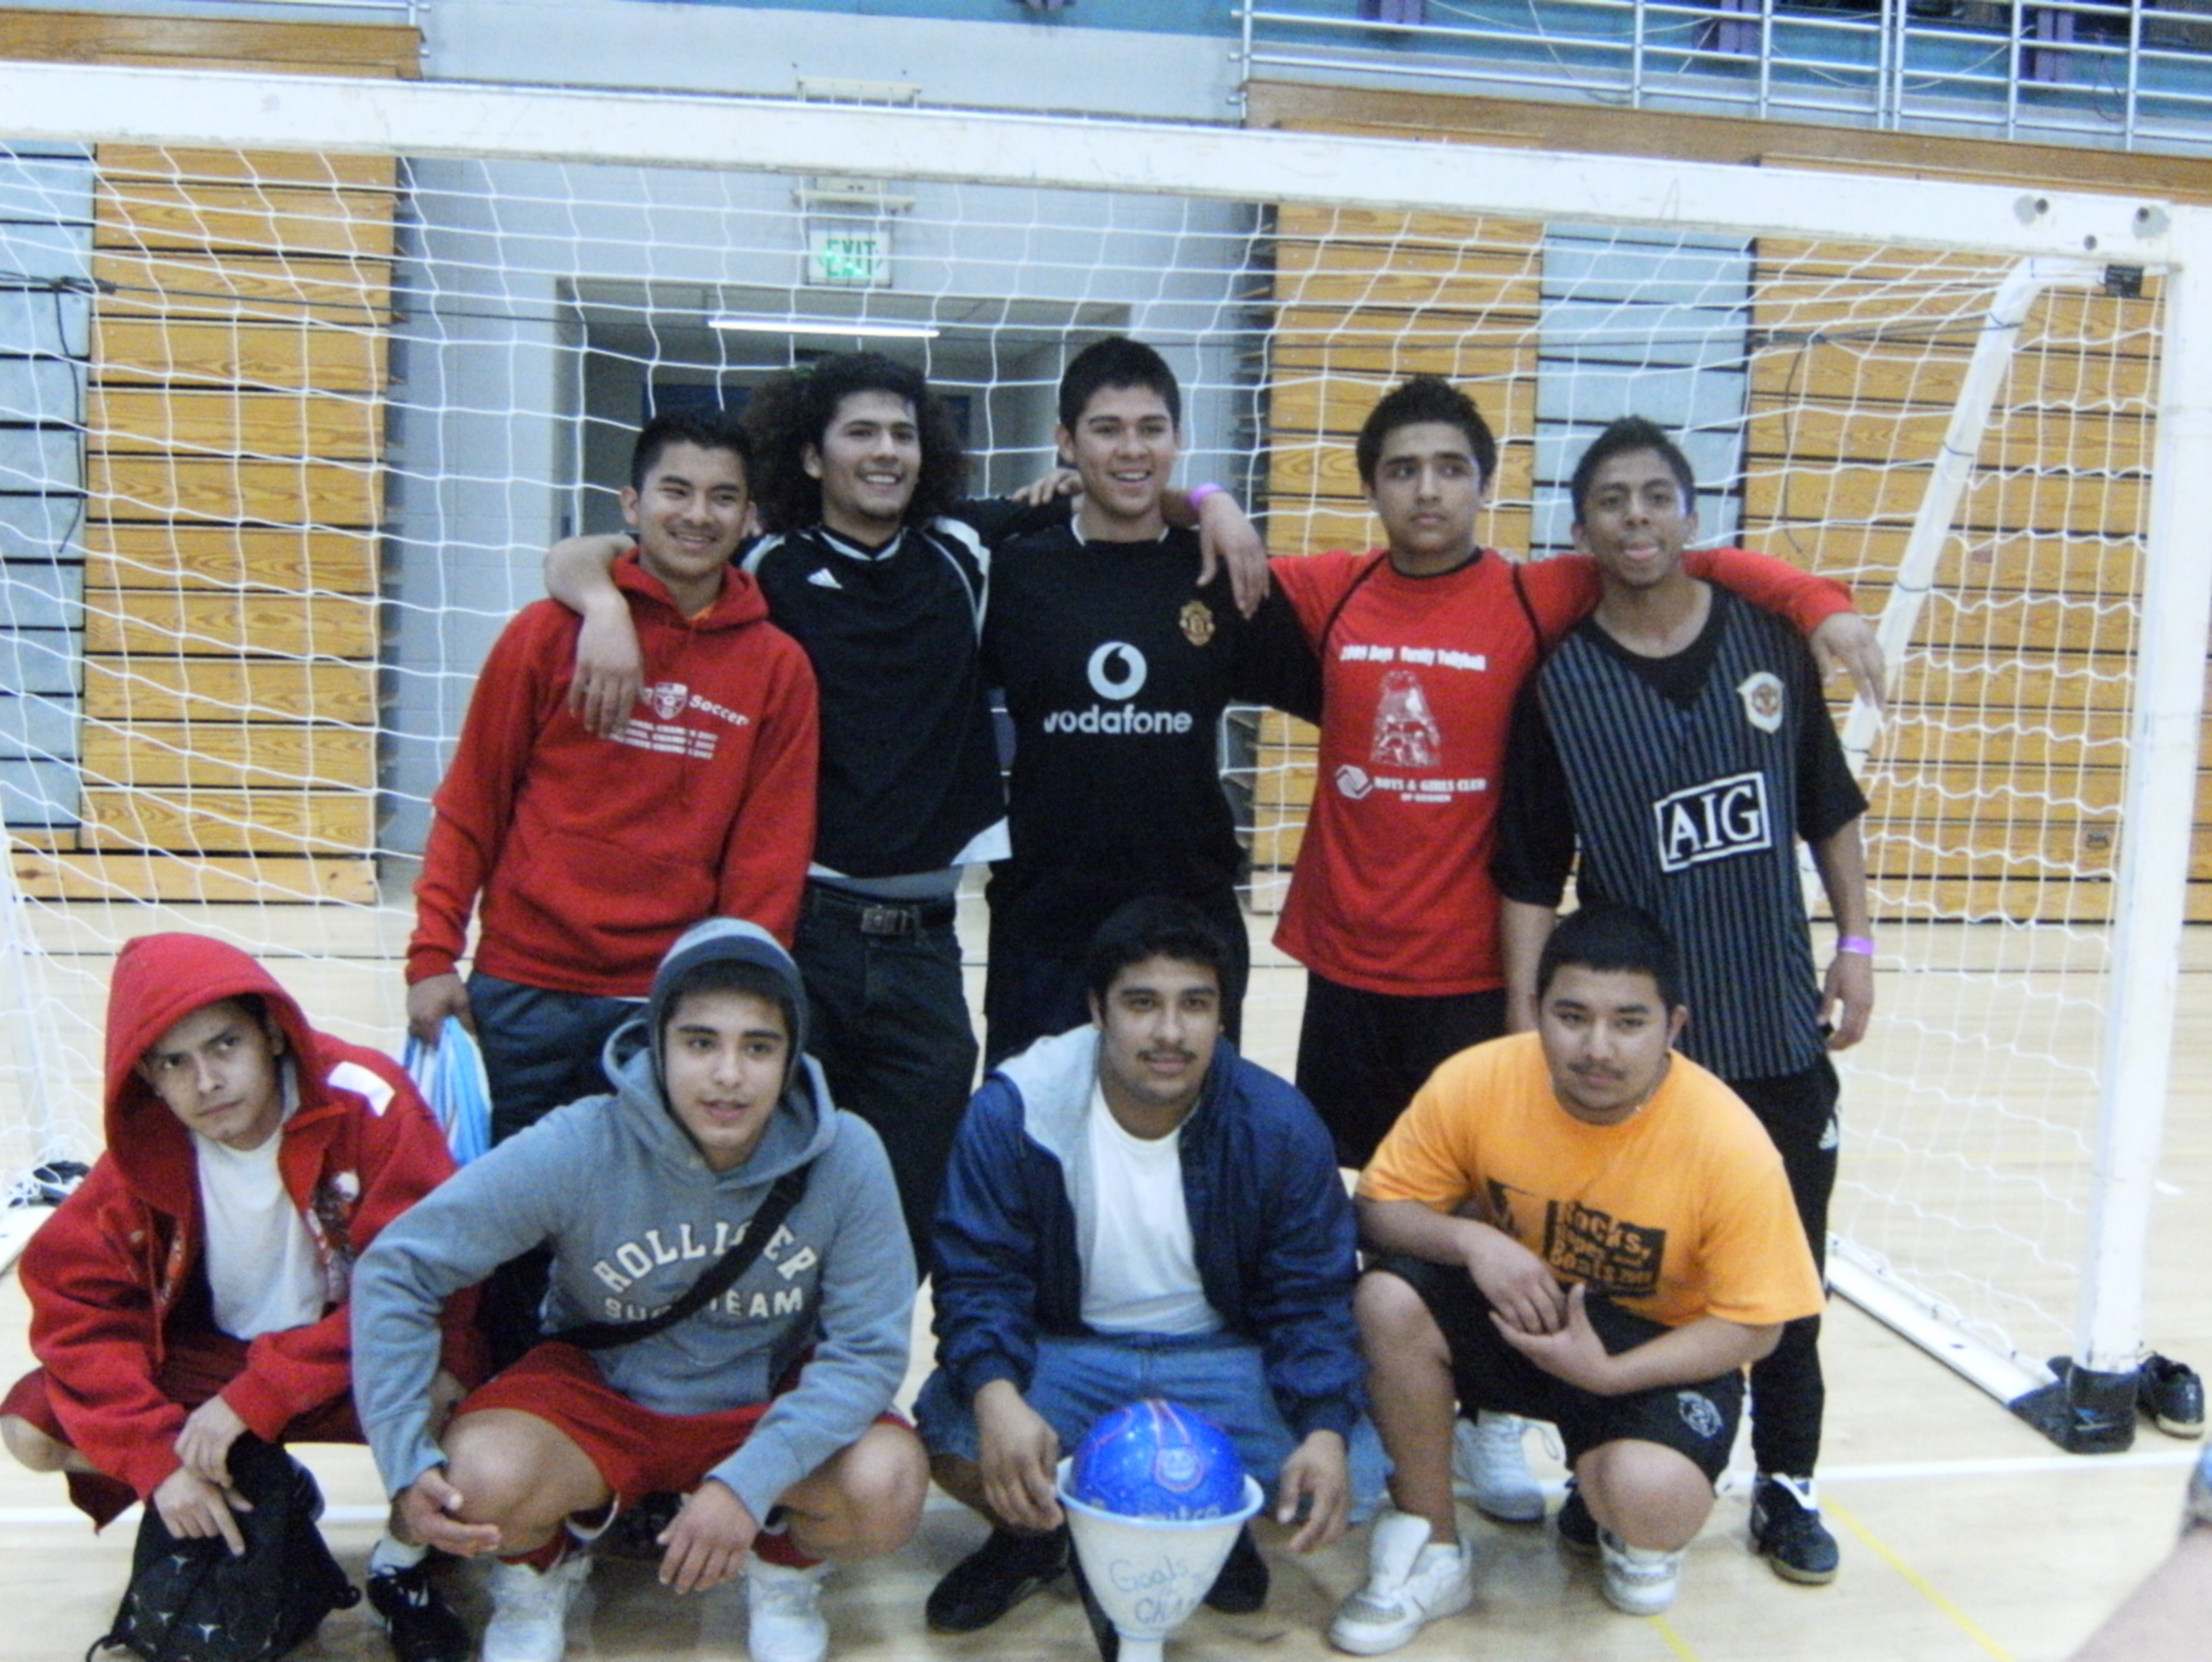 The CITL office hosted a soccer tournament at the Rec Fit recently. Photo by Moises Santos.